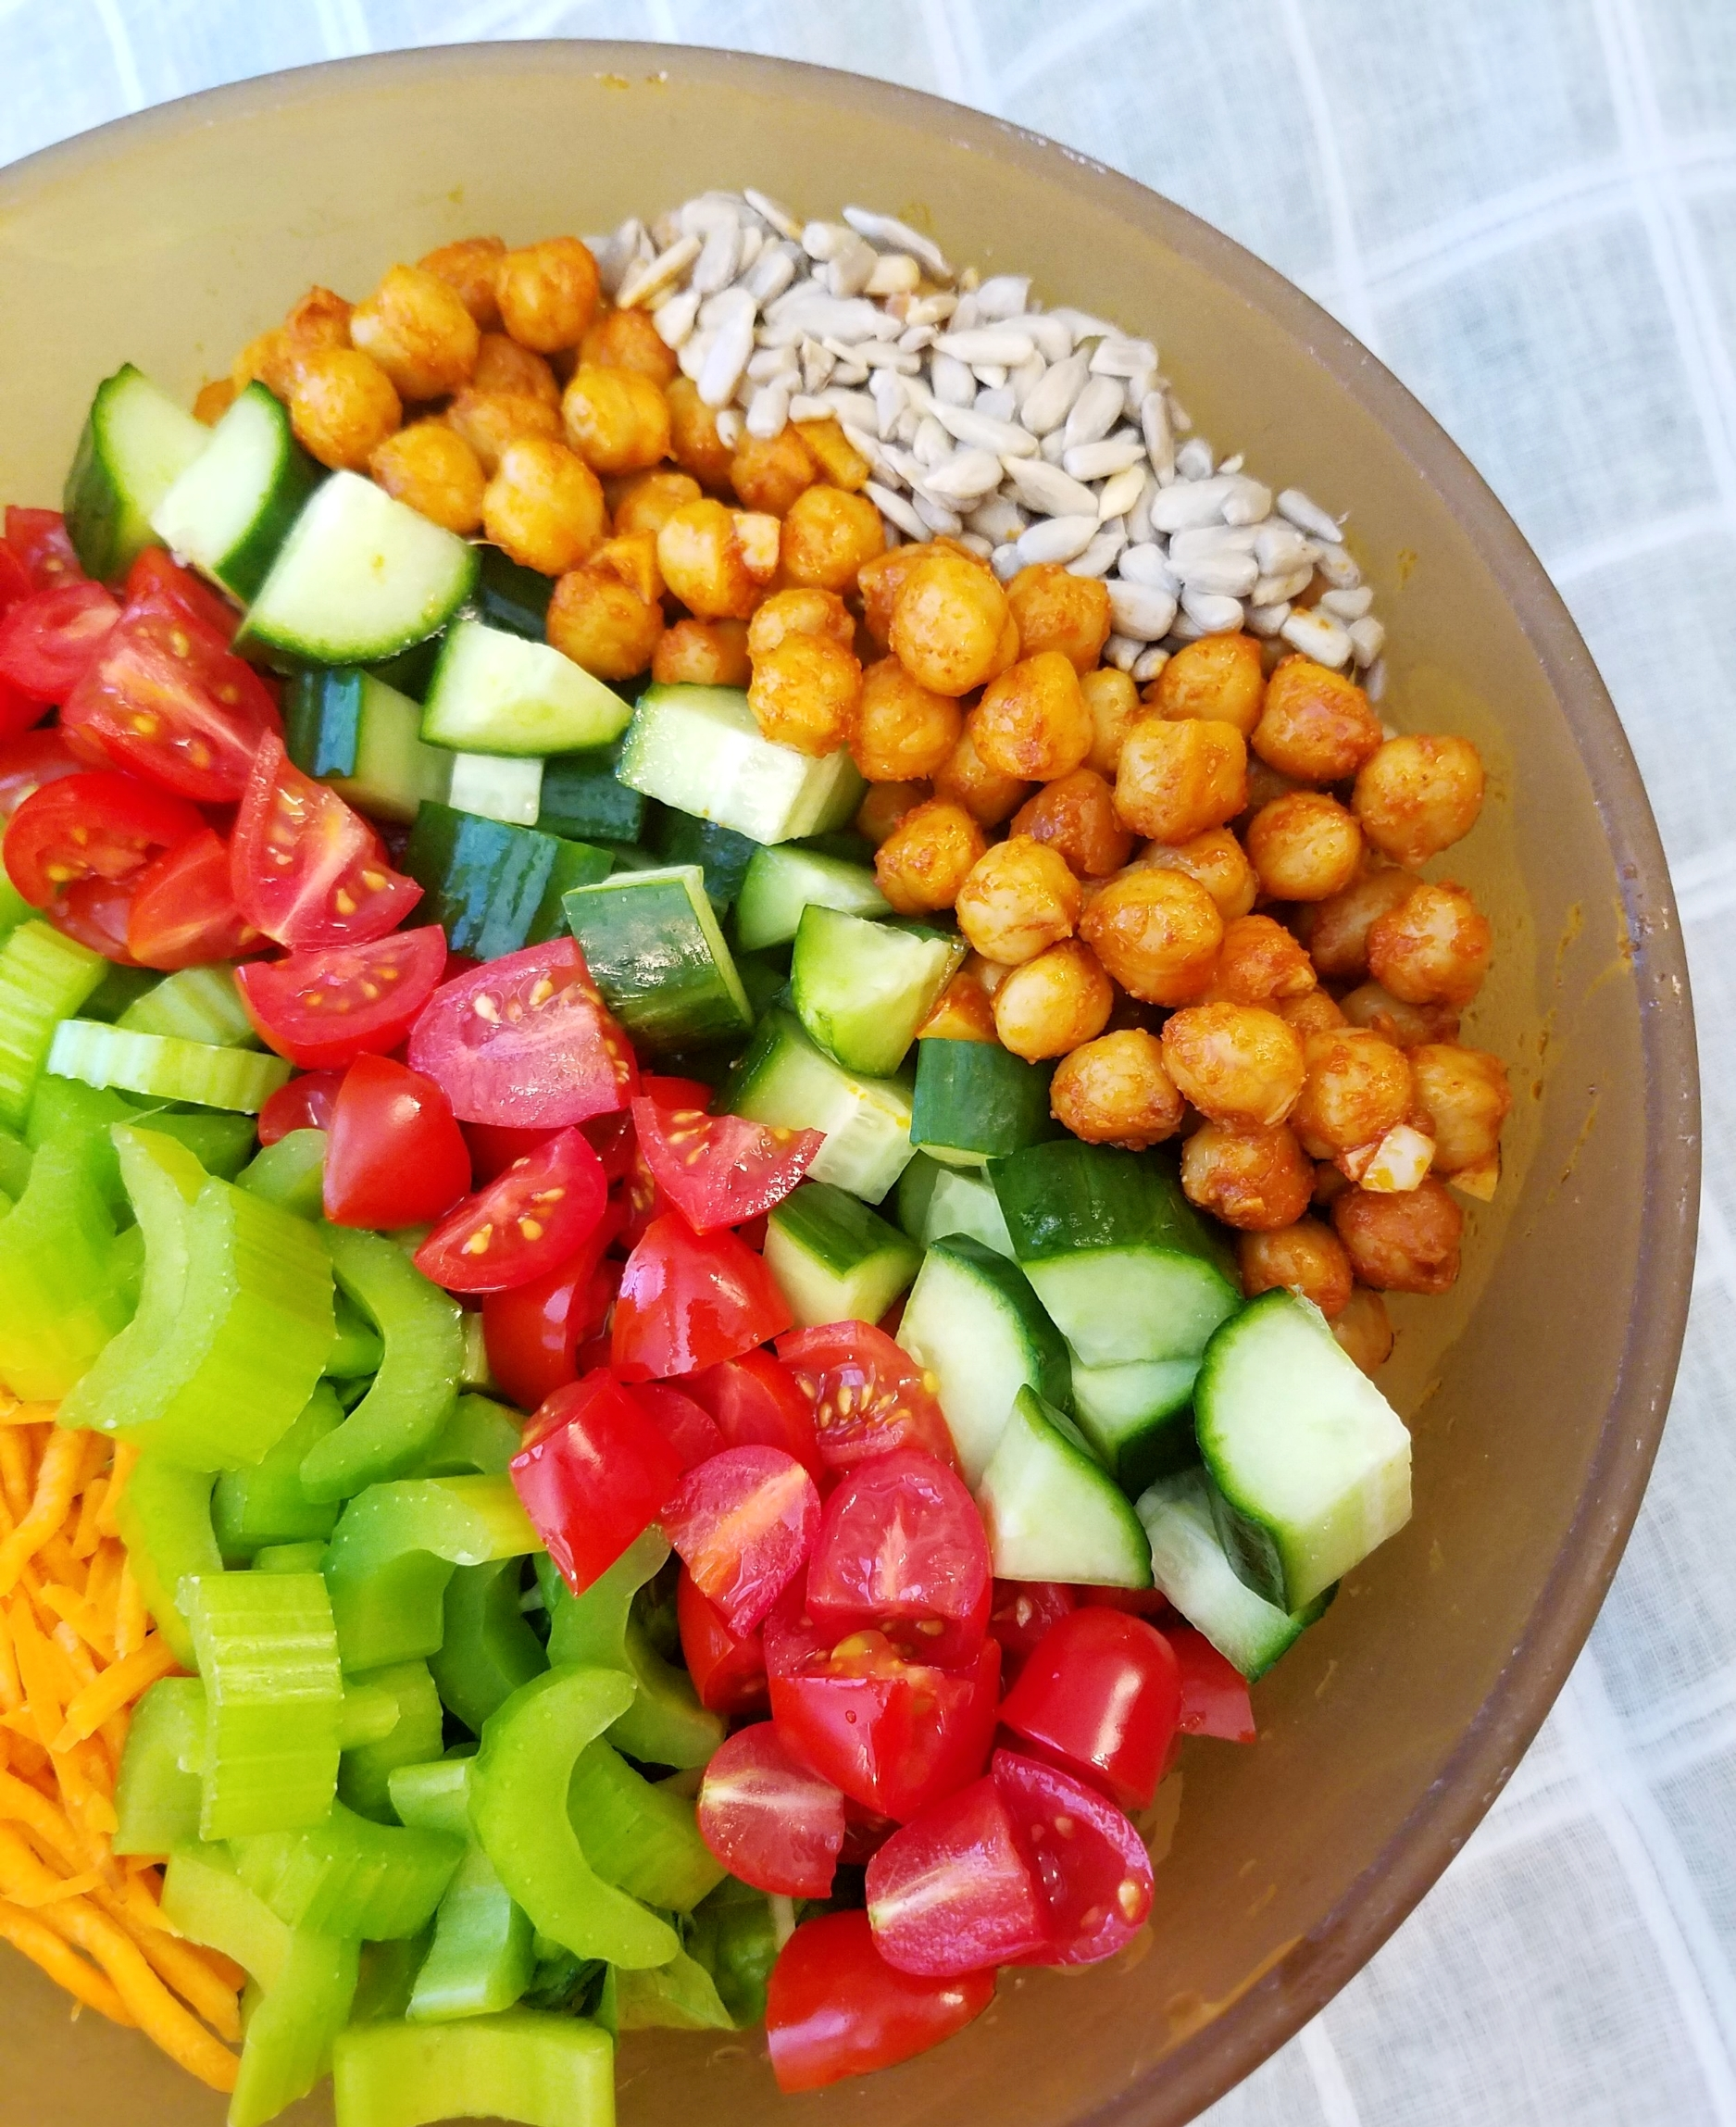 Vegan Baconed Chickpea Salad with Ranch Dressing